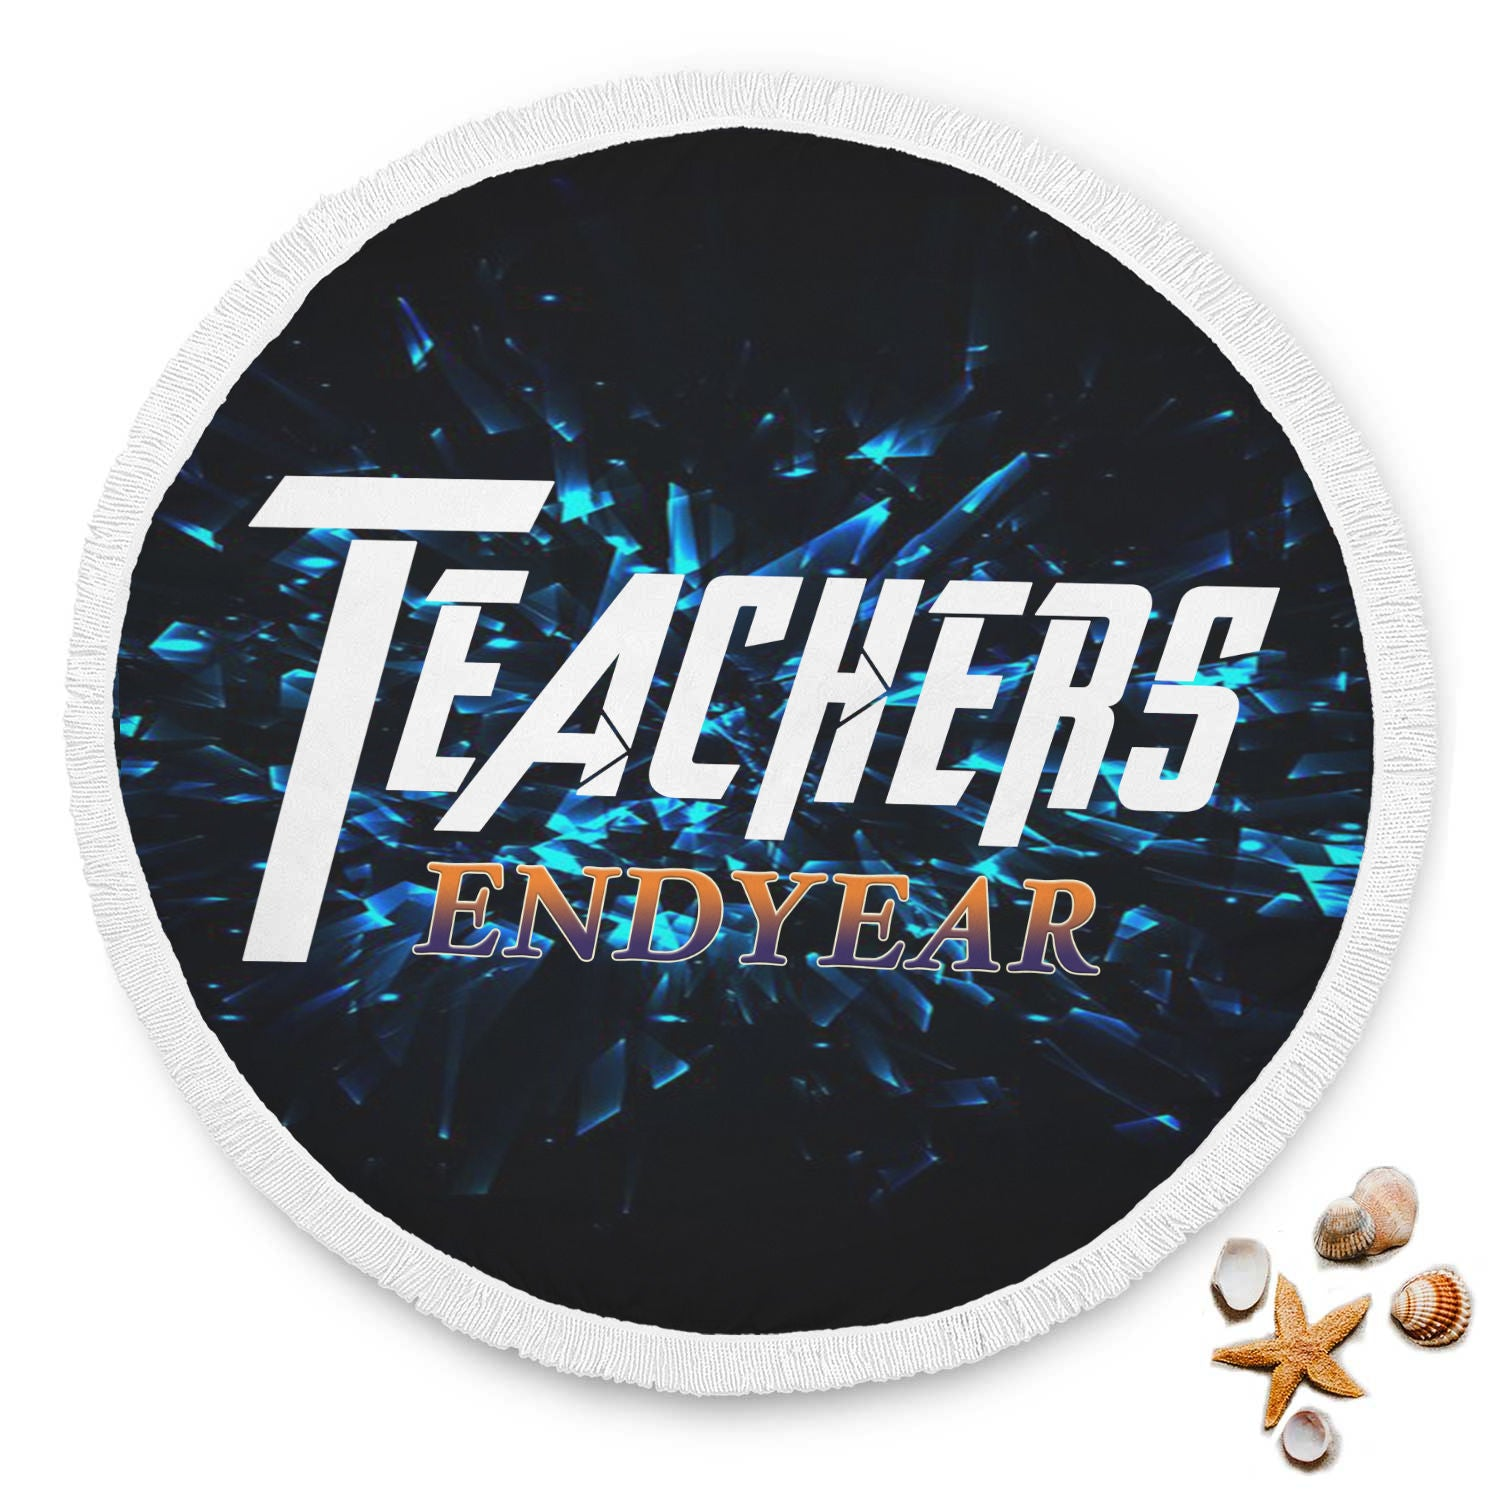 VIRA endyear beach blanket for awesome teachers